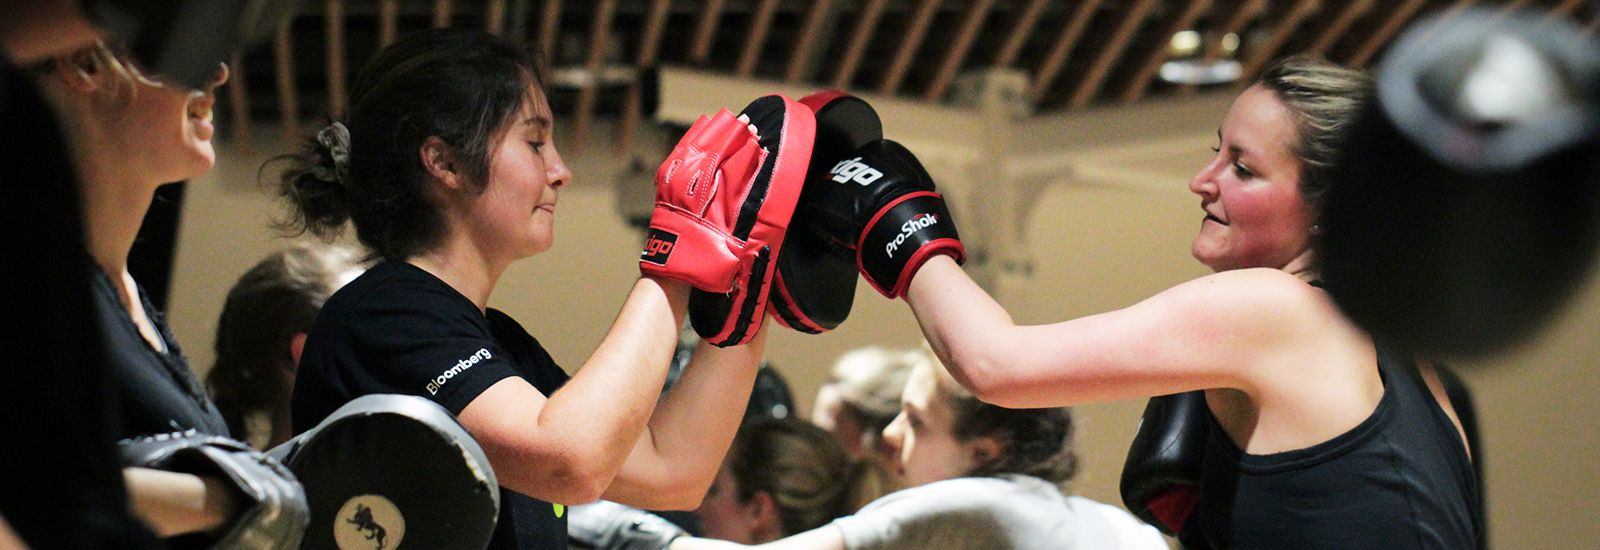 Two students practicing boxing